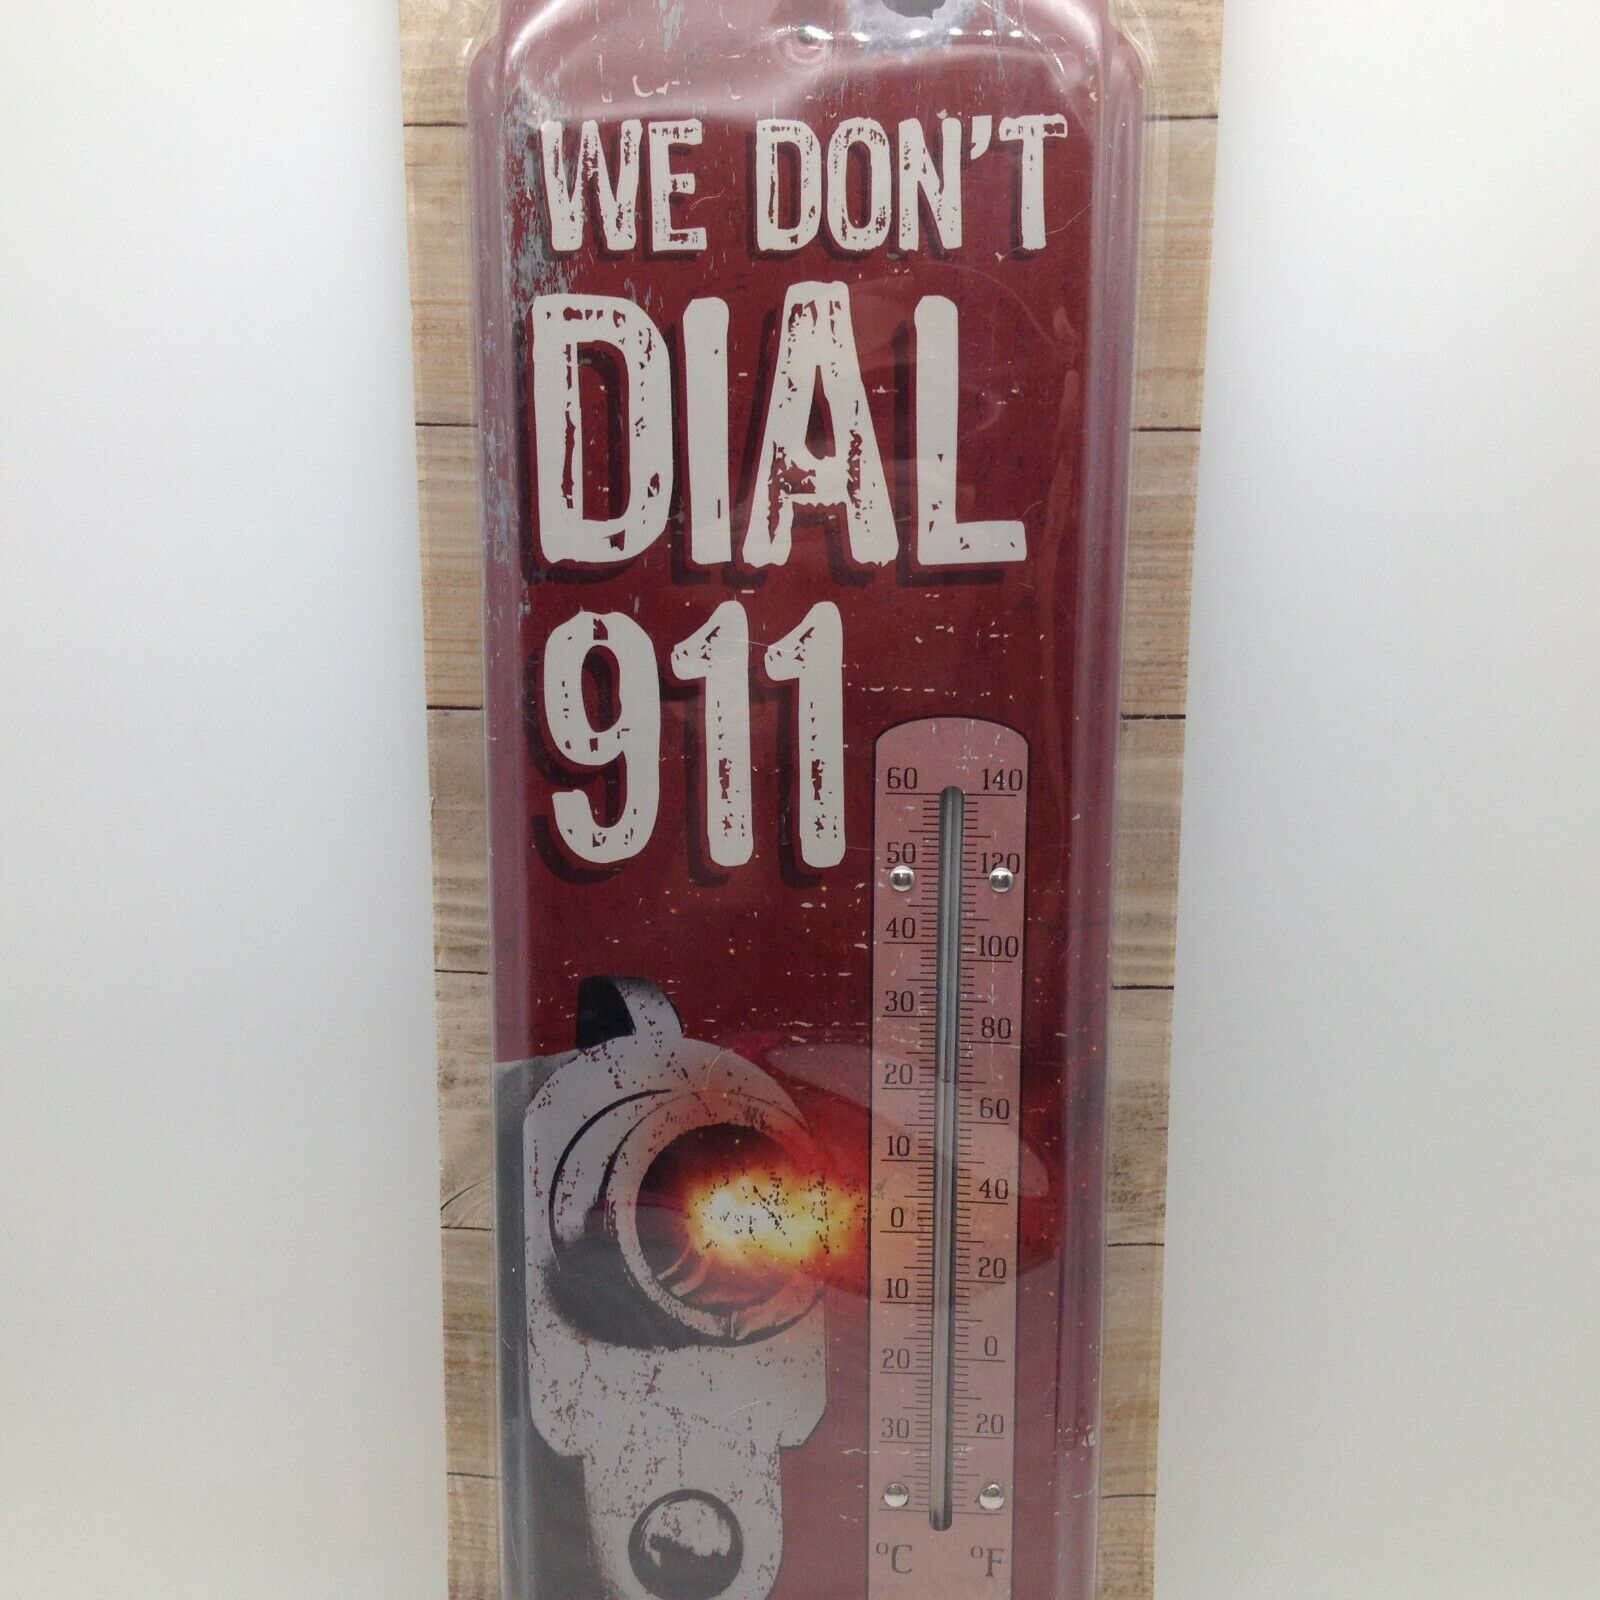 We Dont Dial 911 Indoor Outdoor Thermometer Metal Weather Resistant 17.5 in Tall